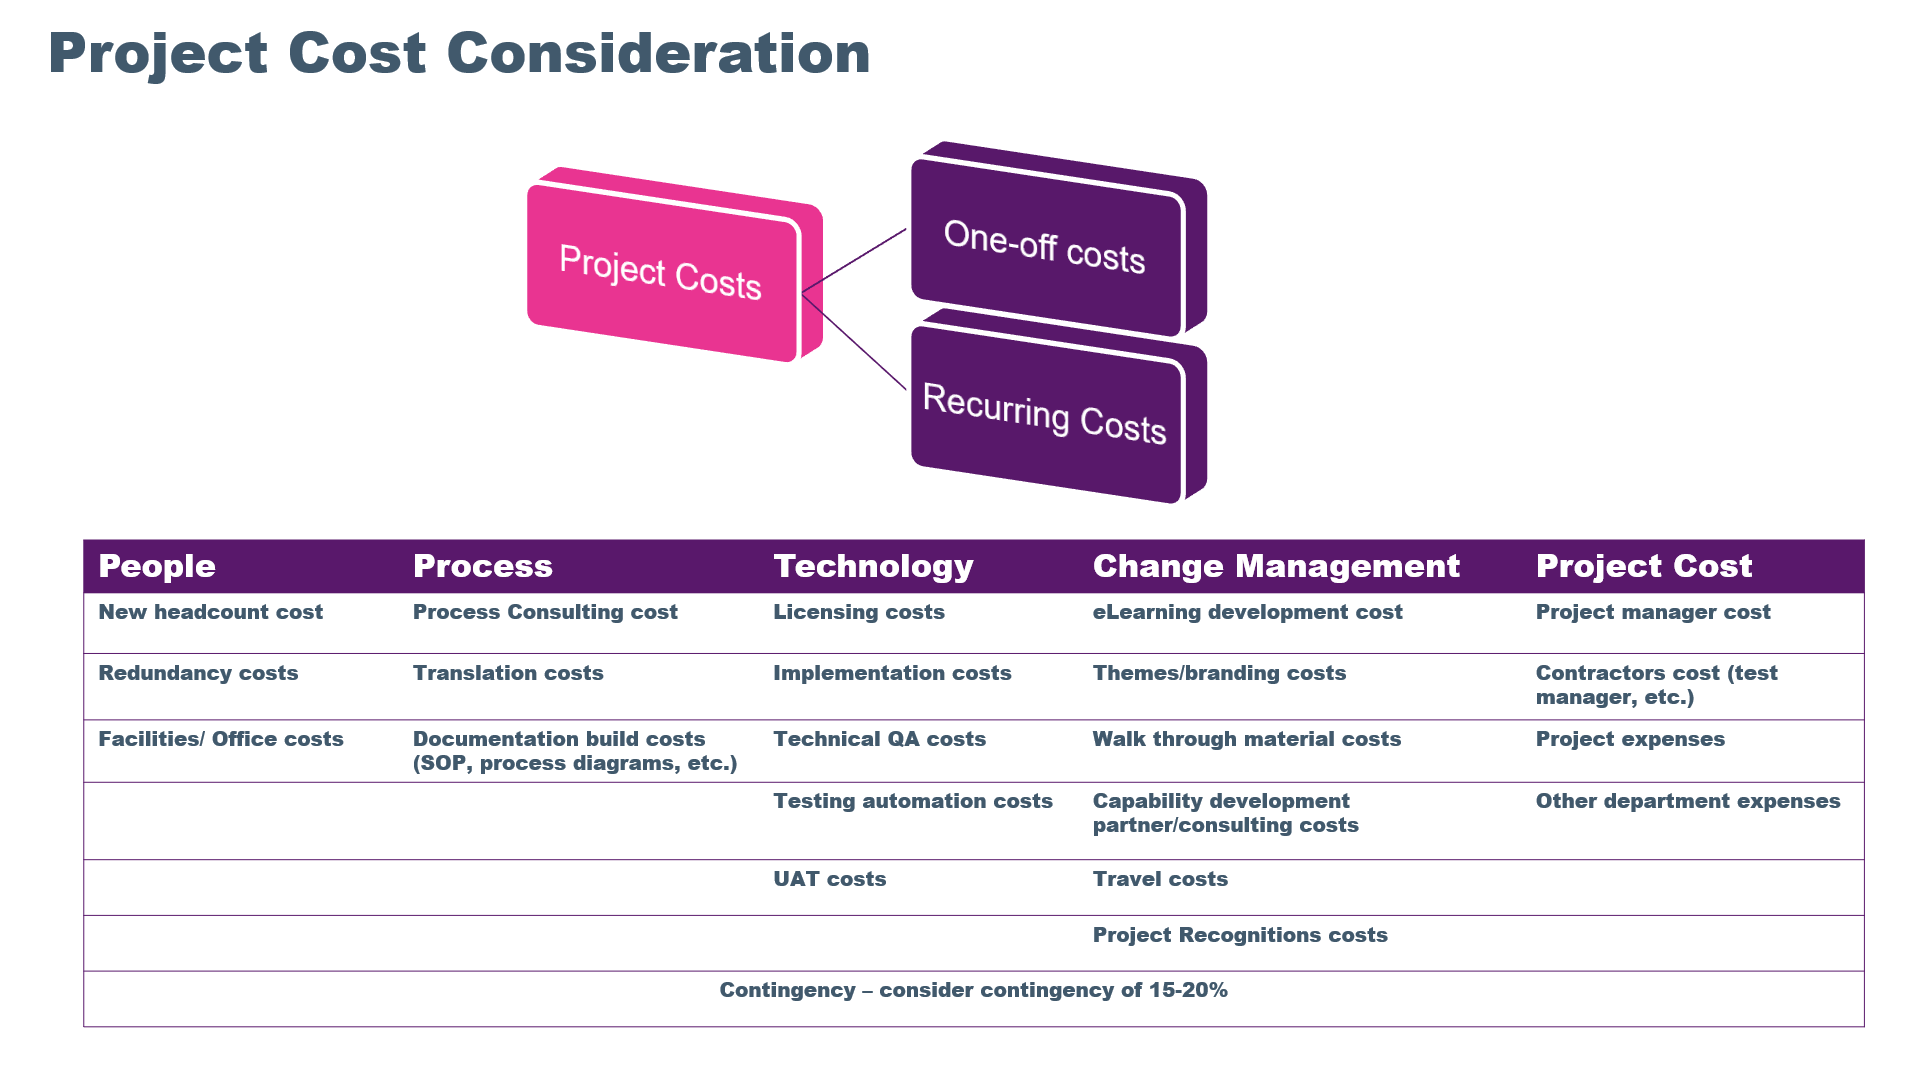 HR Project Cost considerations